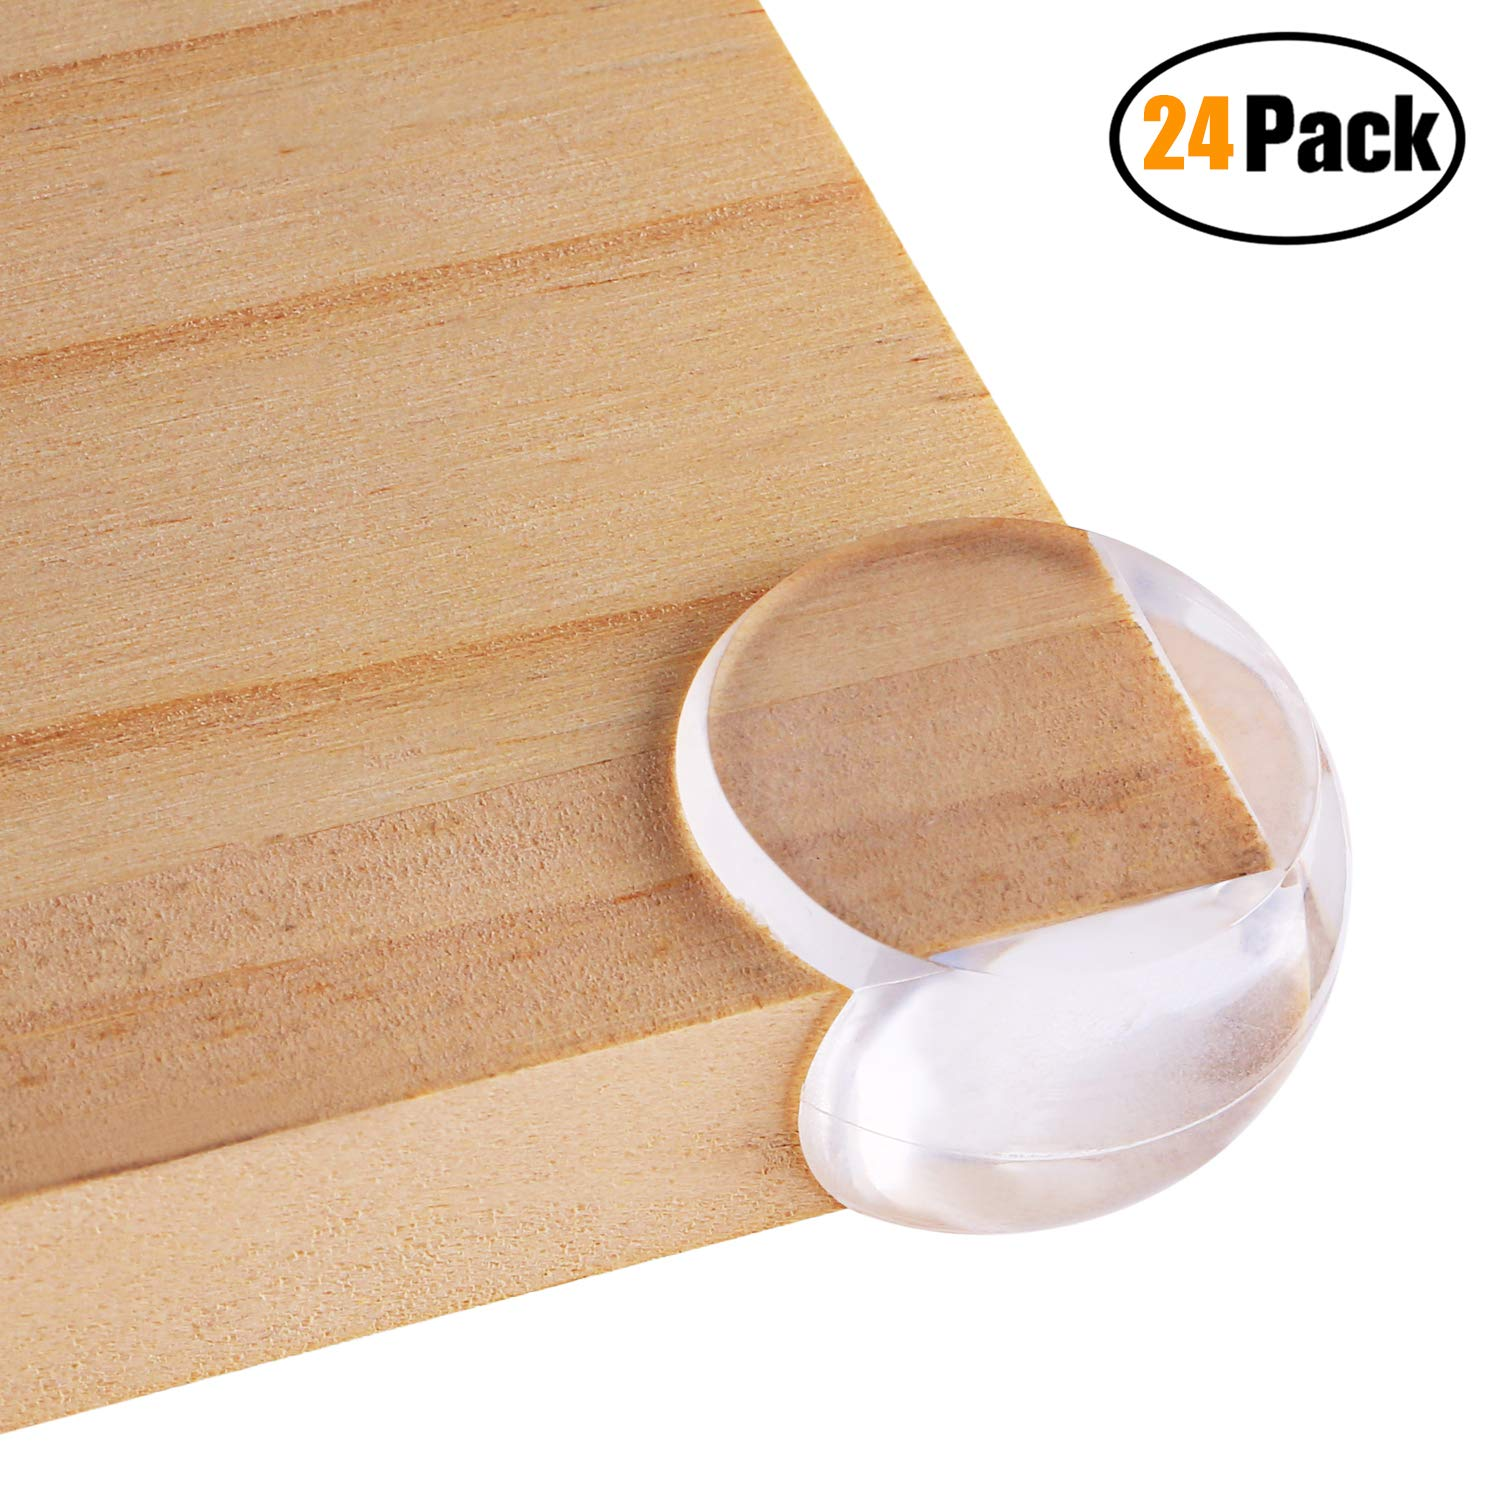 [24 Pack] Elimoons Corner Protectors, Keep Babies&Kids Safe, Corner Guards with Adhesive for Furniture, Table Against Sharp Corners, Ball-Shaped